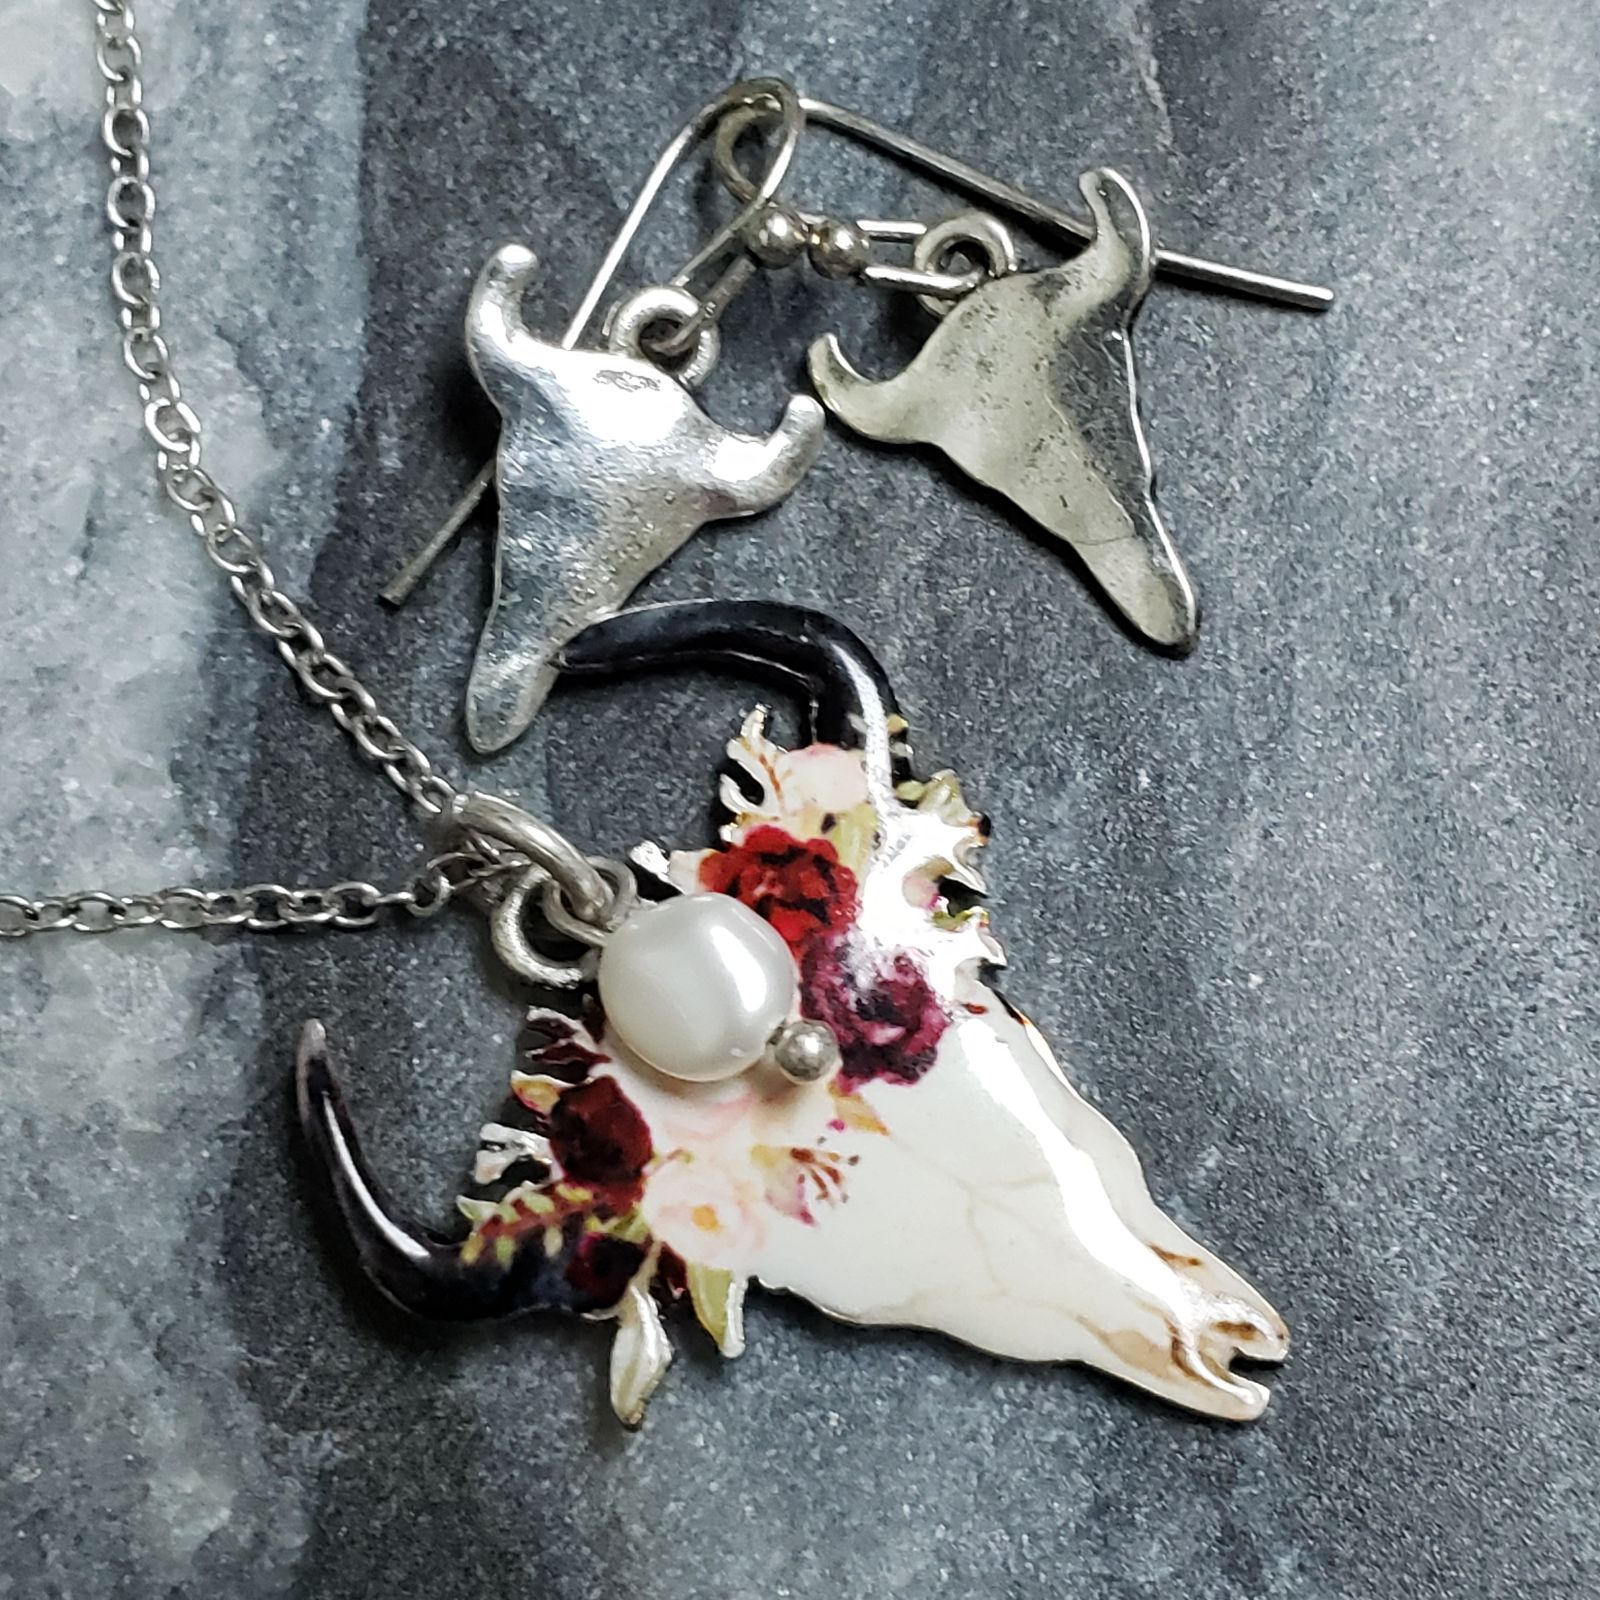 Cow skull necklace and earrings set